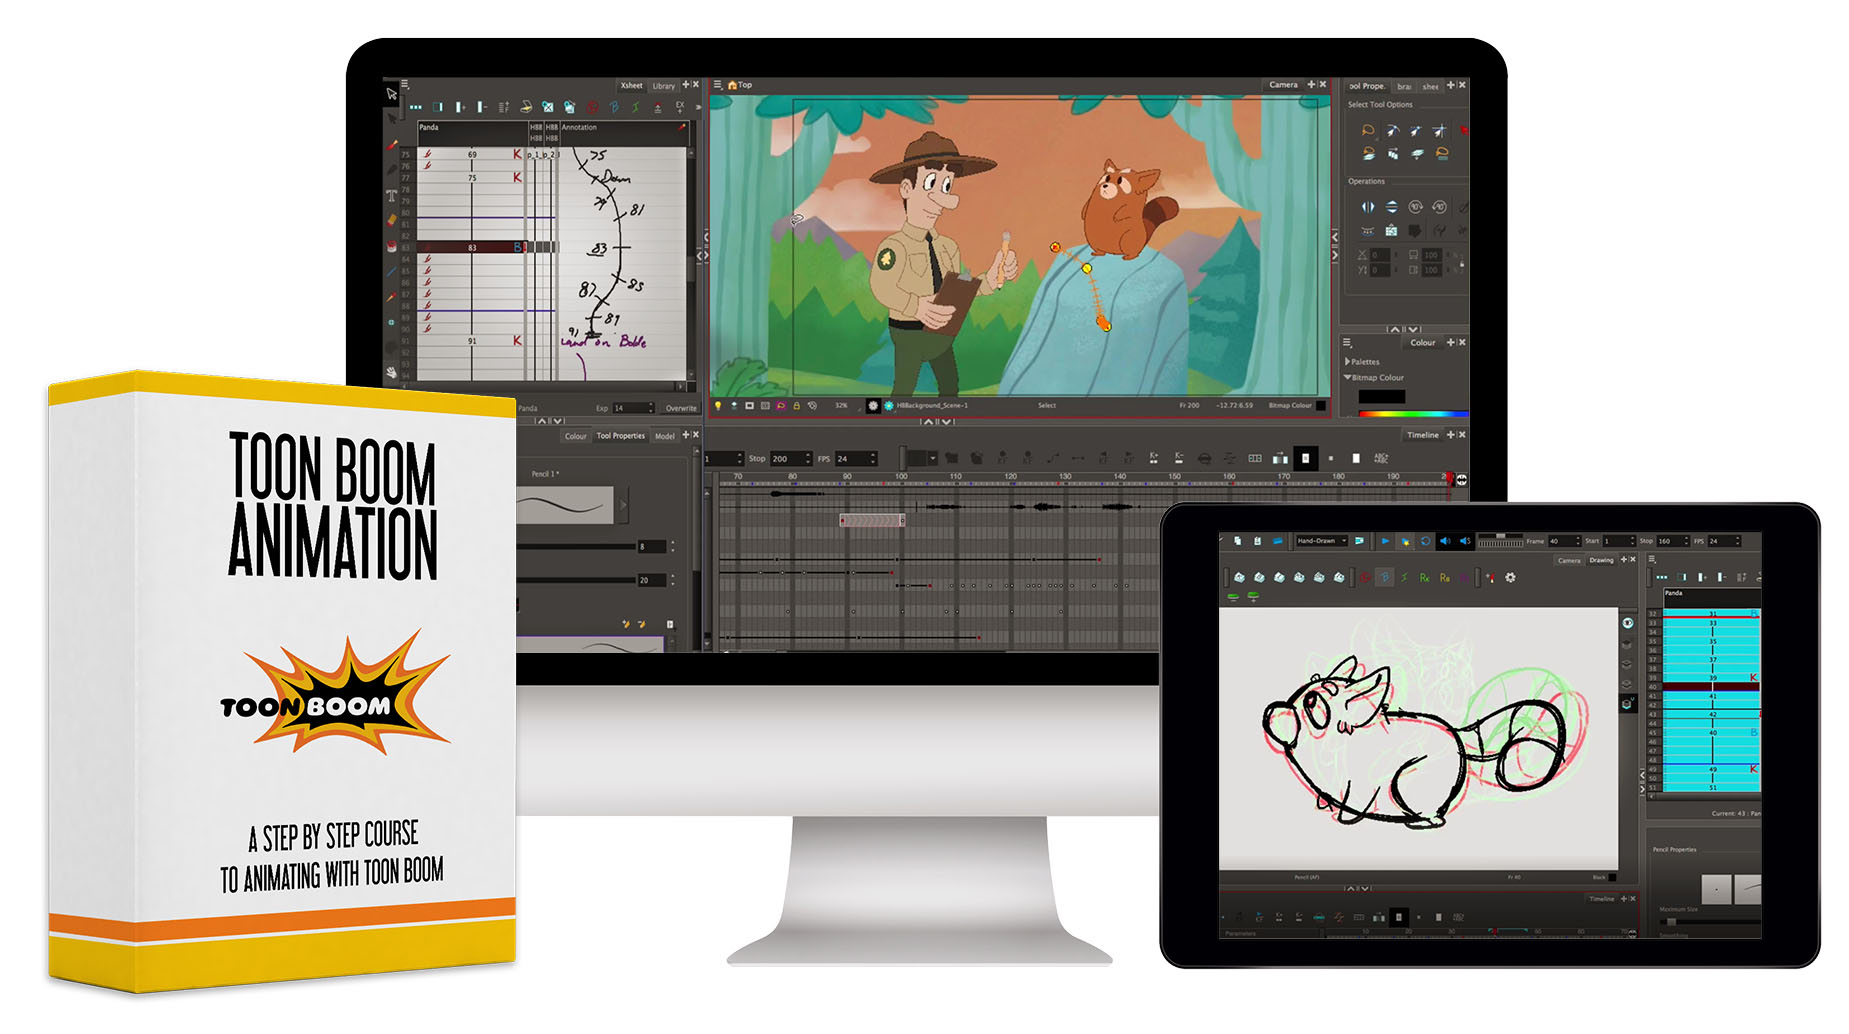 Toon Boom Animation course - 39 HD Video Lessons